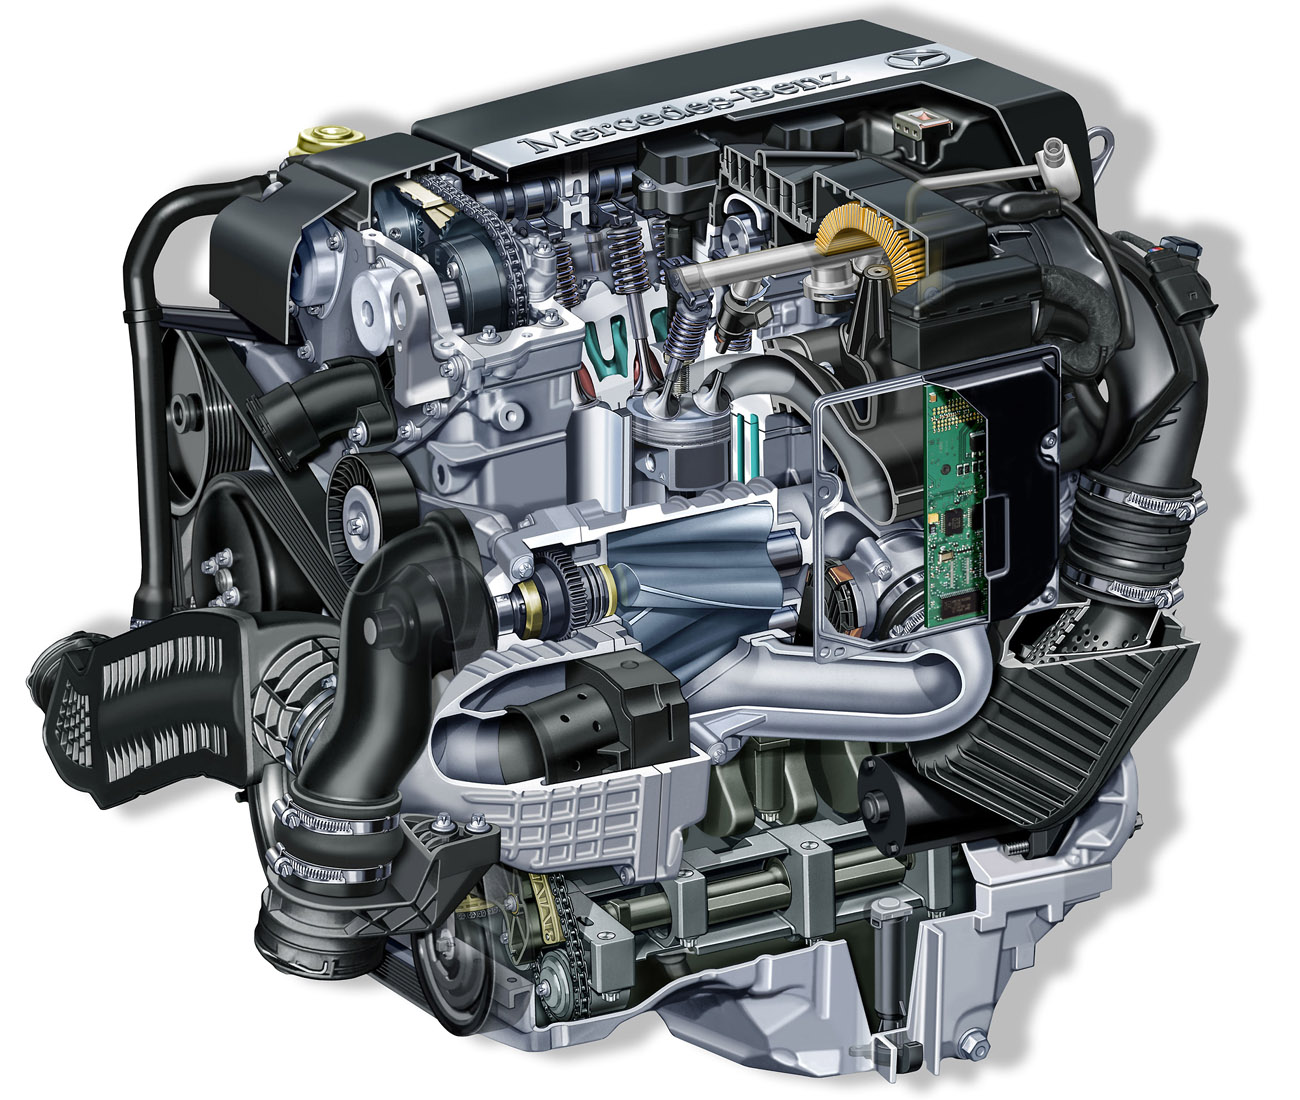 Cars N Bikes 10 04 11 Benz Engine Diagram Mercedes Is The To Much Hours Powerits All About Oilmercedes Partsmercedes